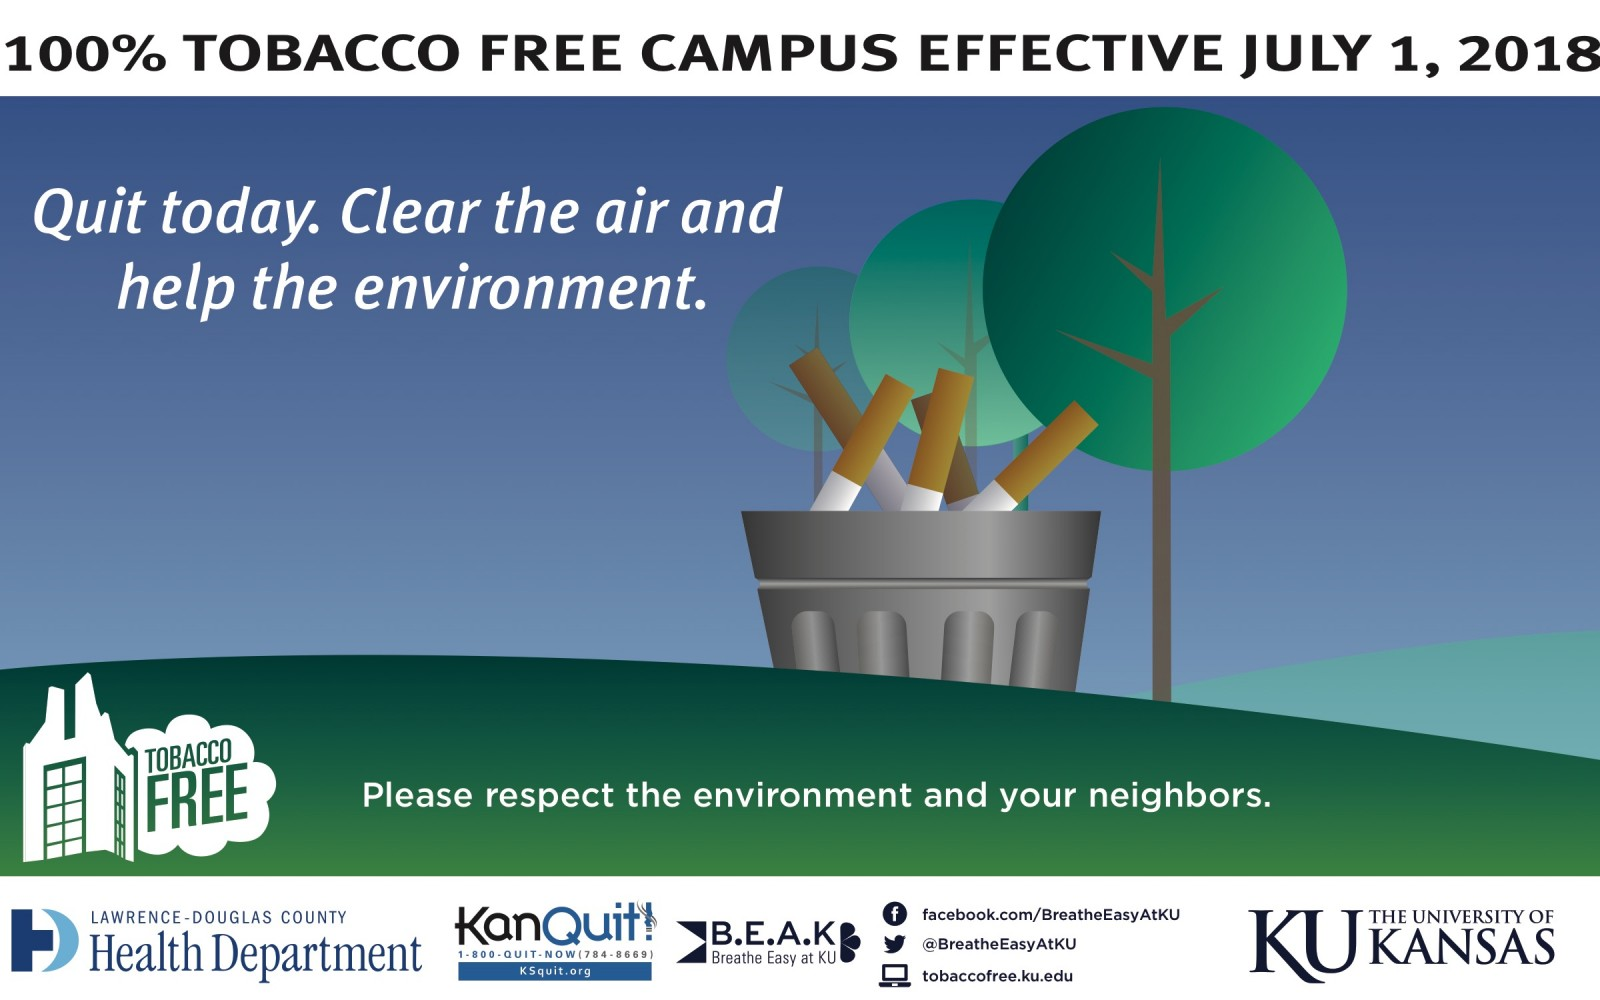 100% TOBACCO FREE CAMPUS EFFECTIVE JULY 1, 2018 Quit today. Clear the air and help the environment. Please respect the environment and your neighbors. Breathe Easy at KU facebook.com/BreatheEasyAtKU @BreatheEasyAtKU tobaccofree.ku.edu